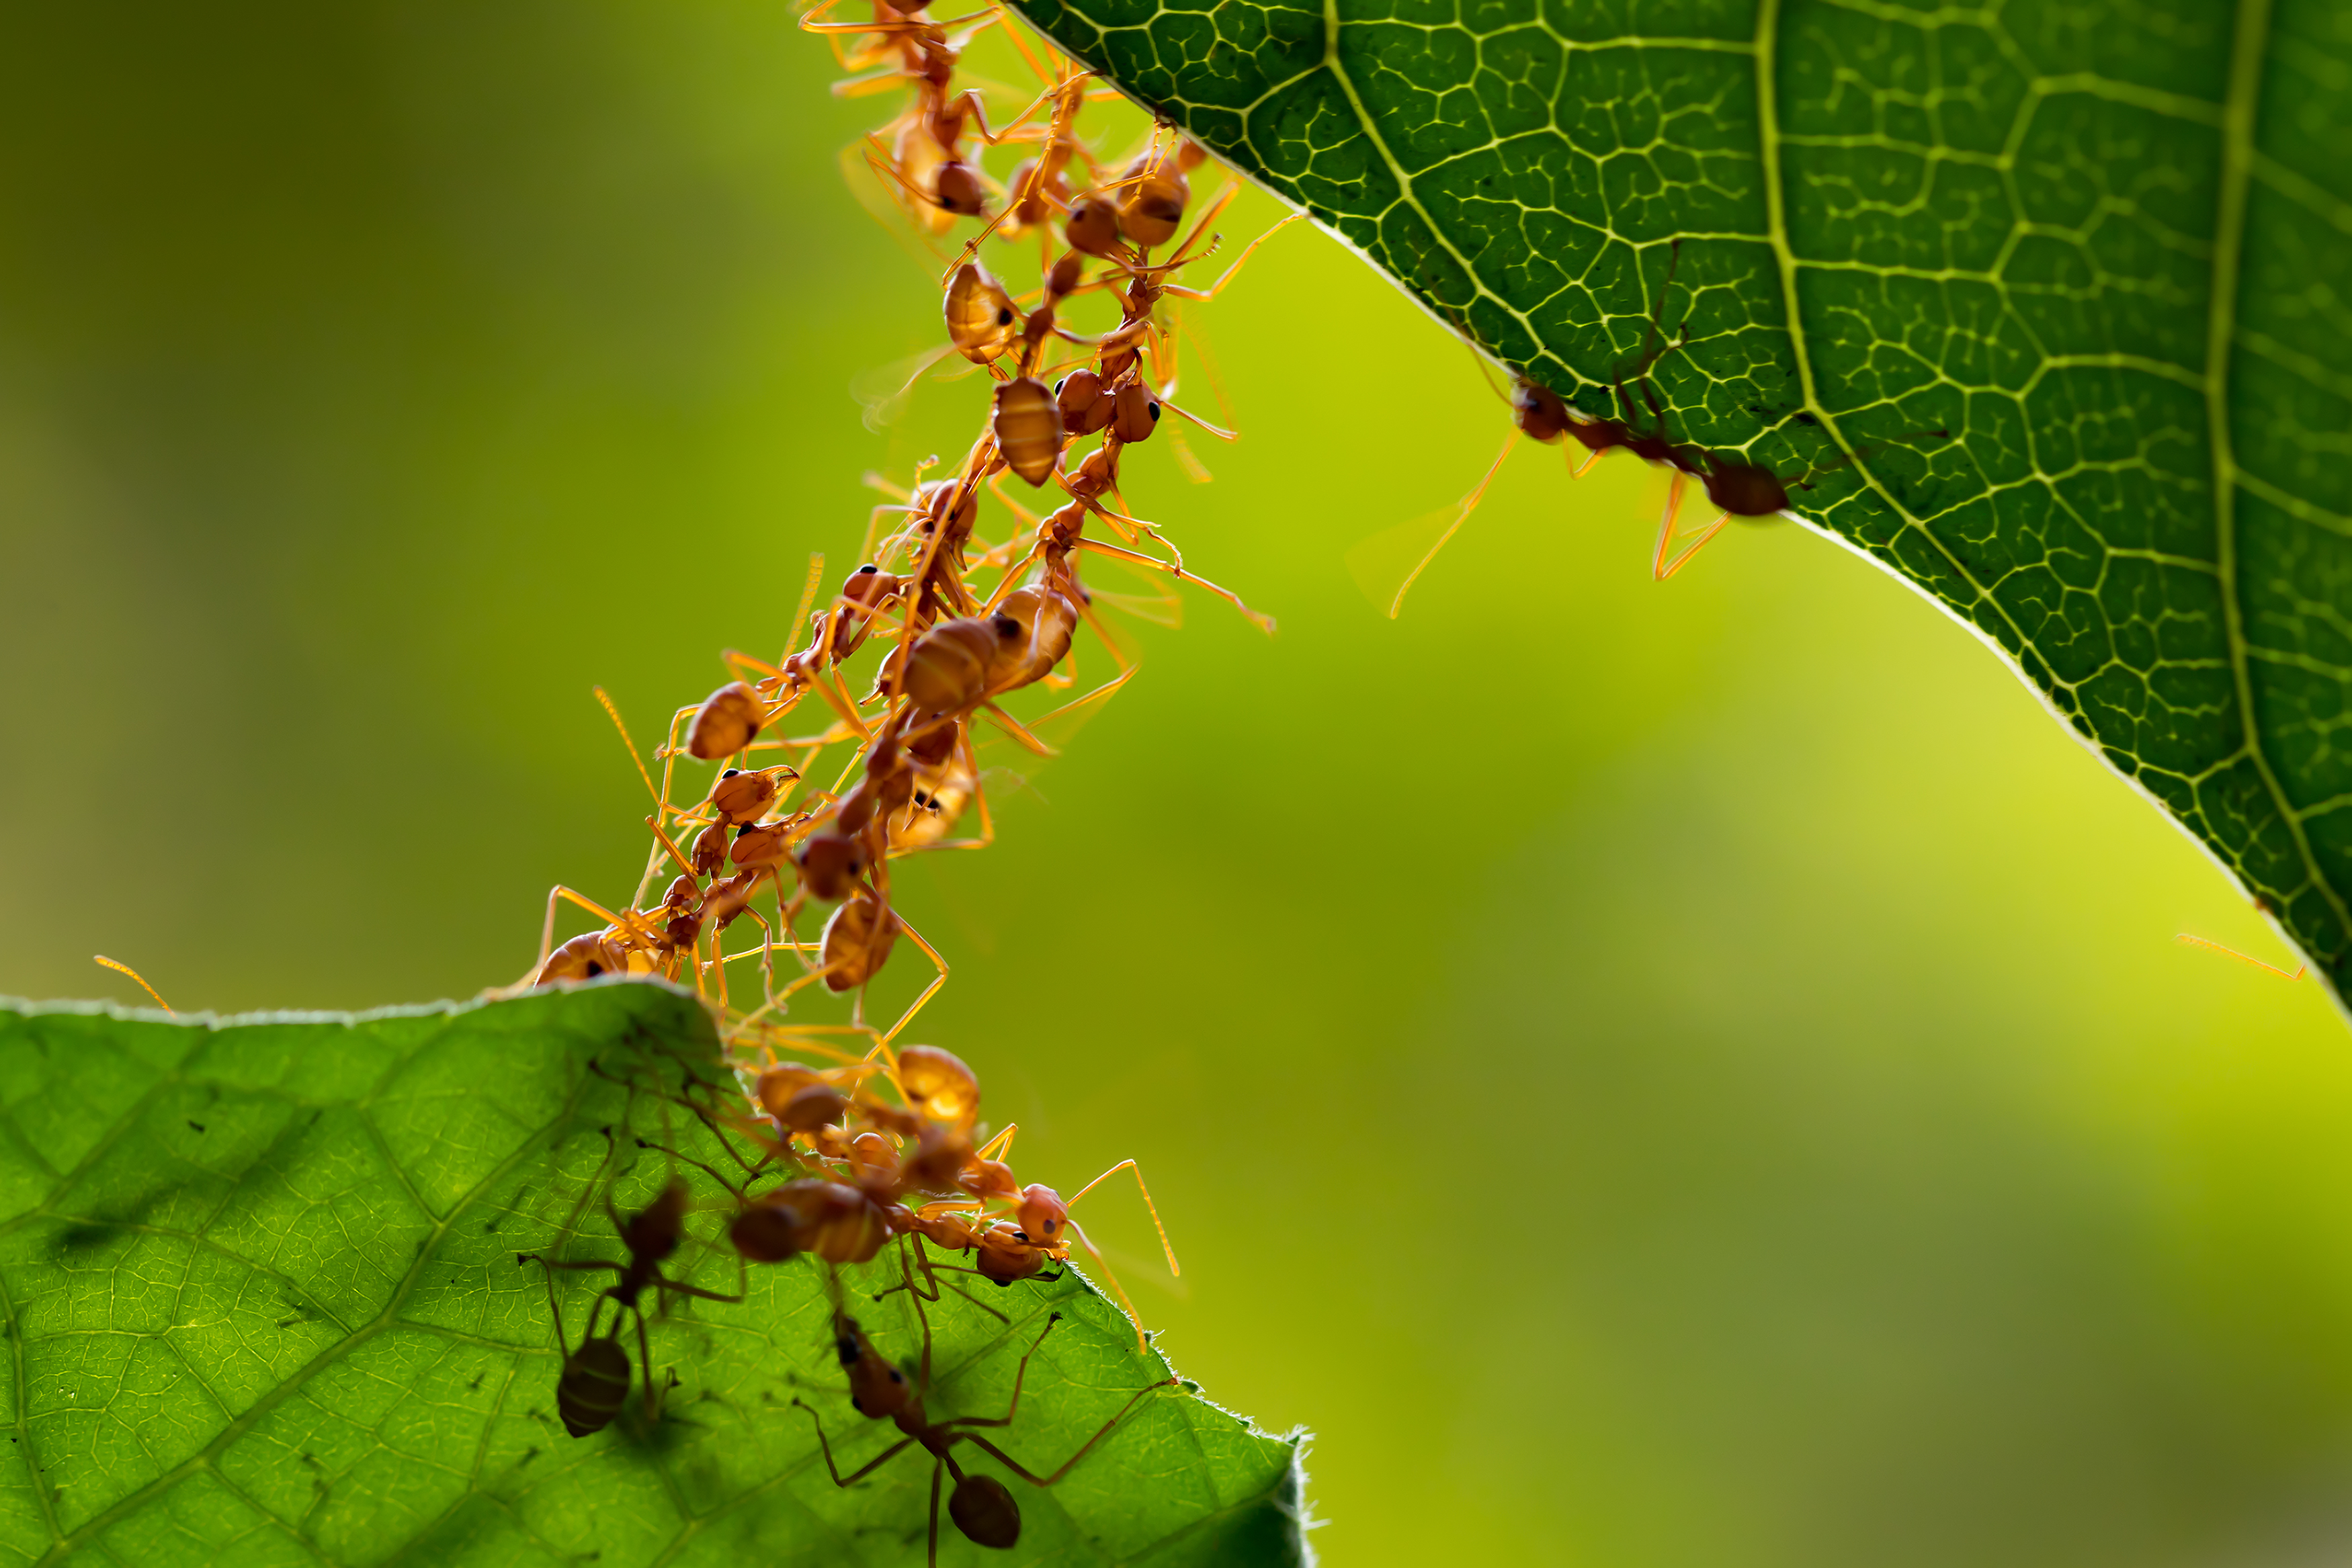 Homemade Pesticides to Get Rid of Ants | Home Guides | SF Gate